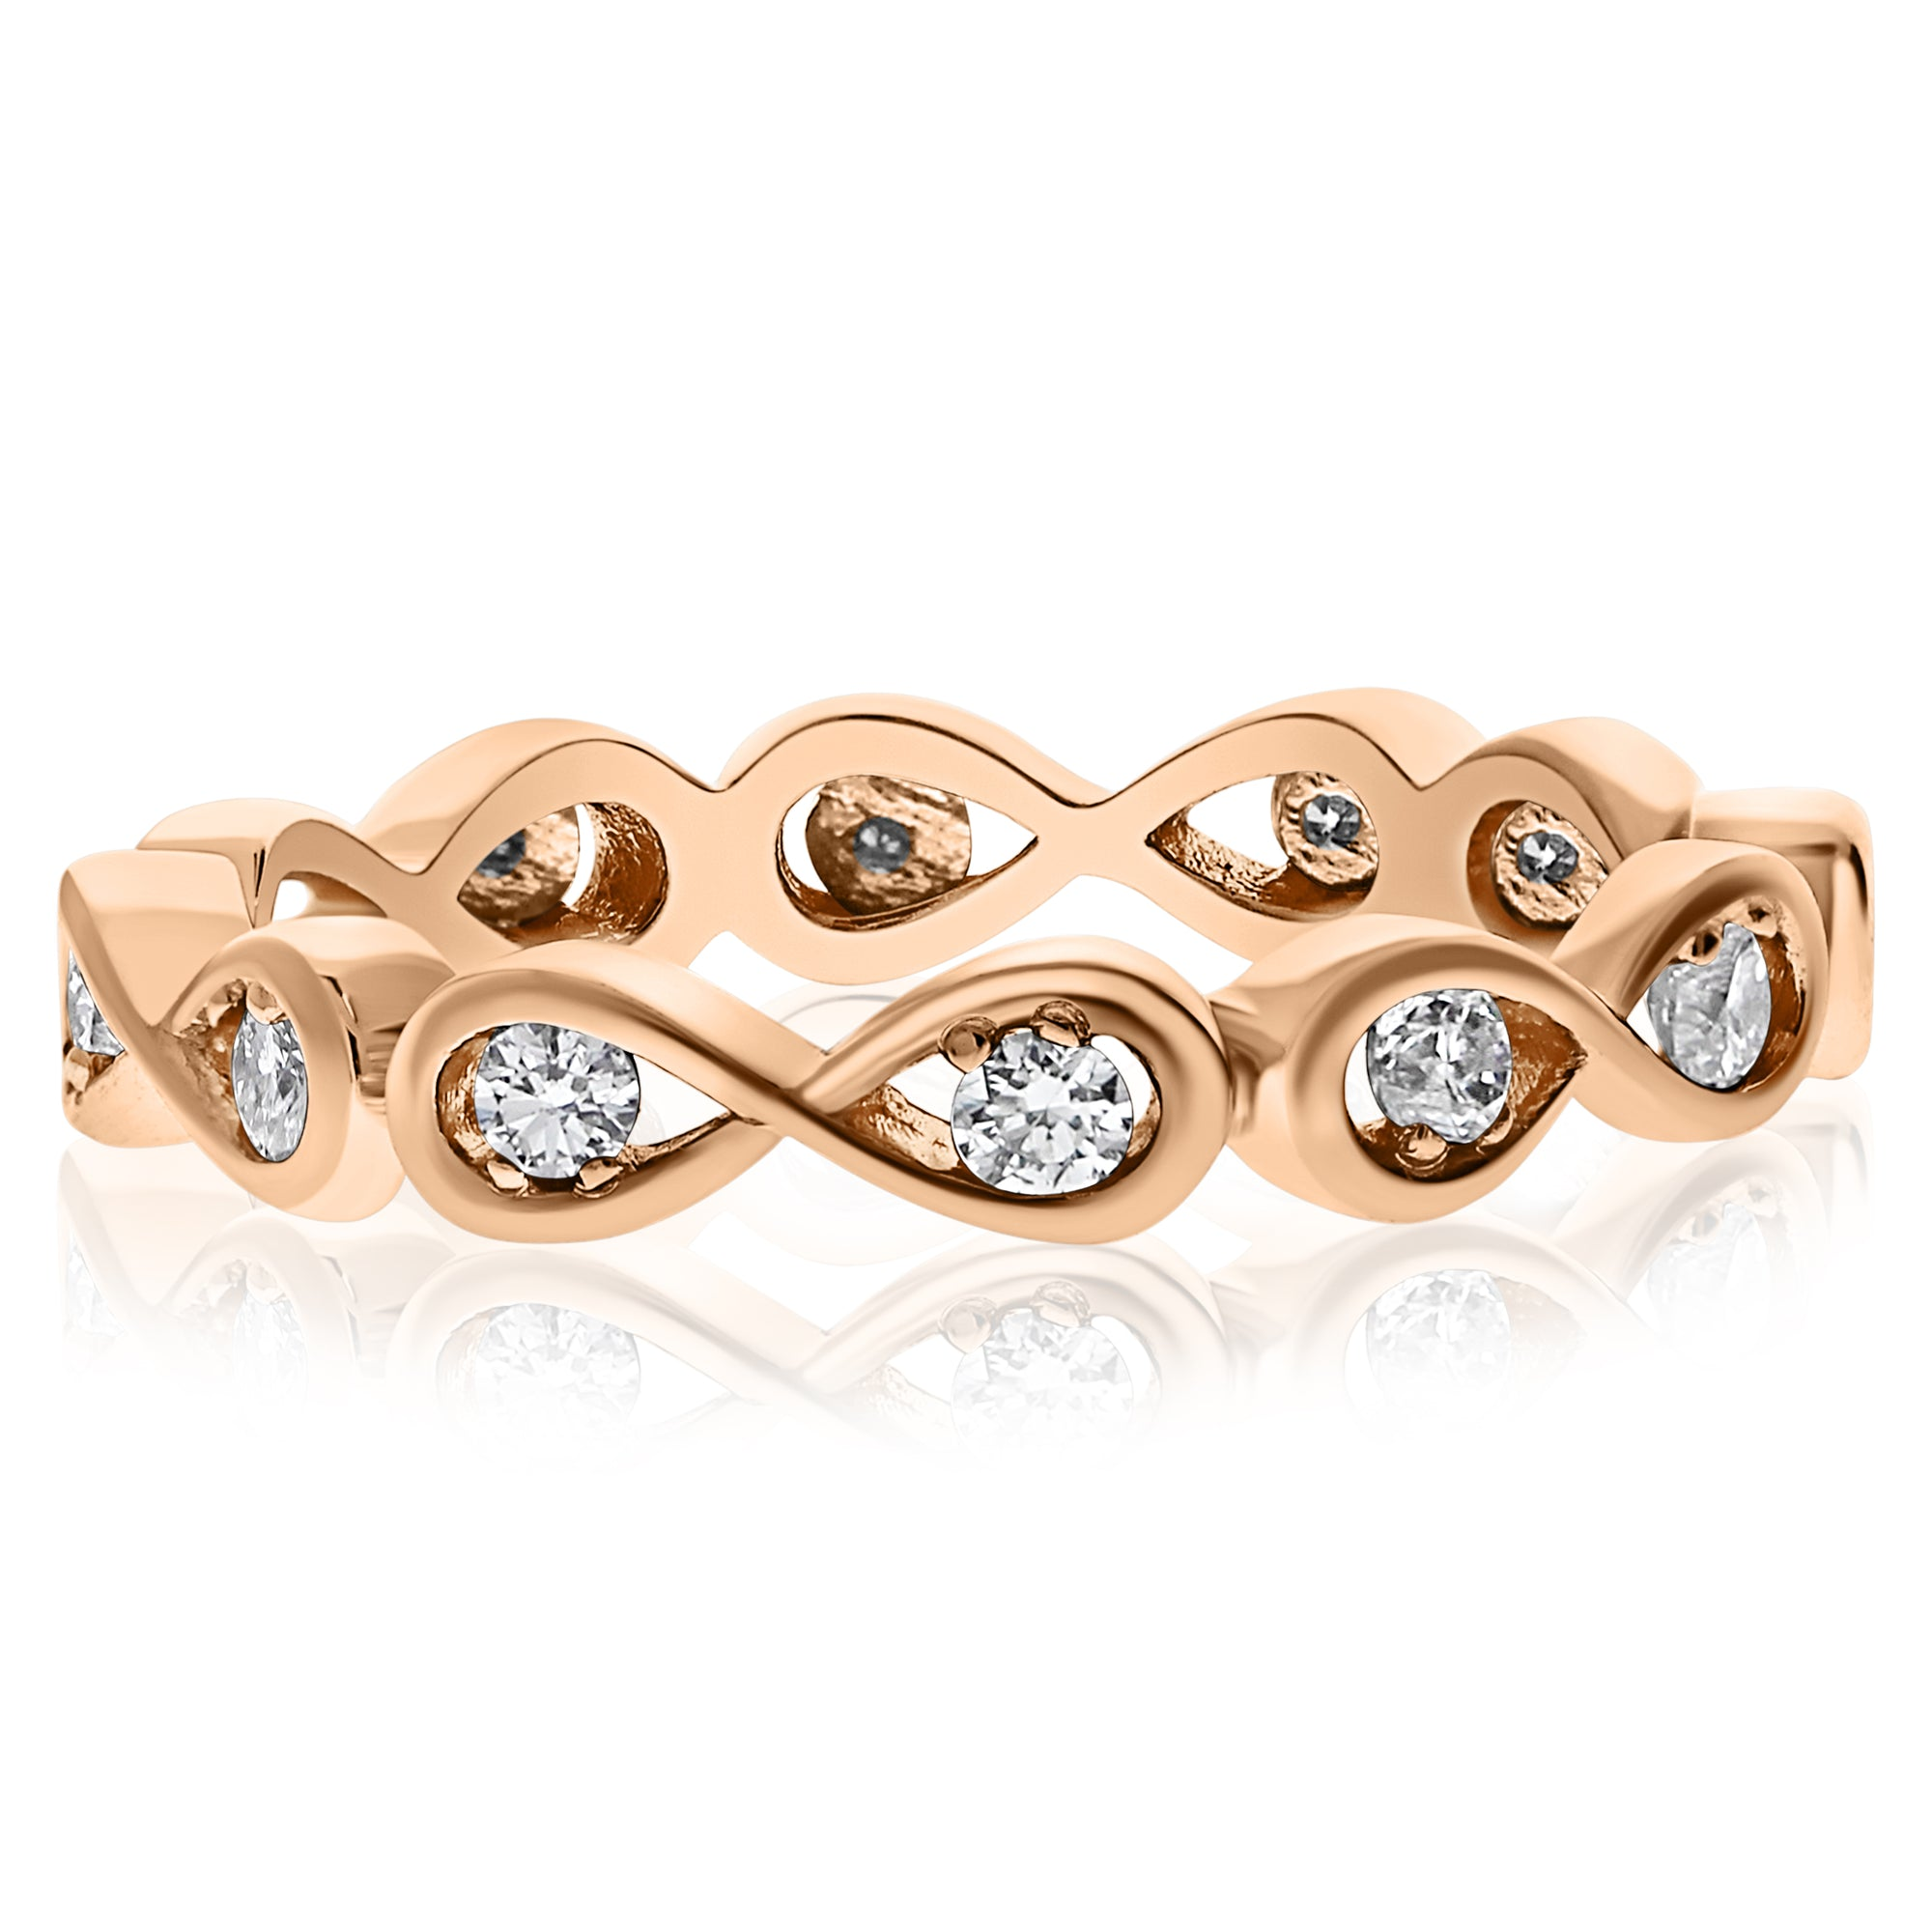 james bands band under full rose engagement of infinity allen oval thin size uk rings thoughts gold ring kohls wedding vintage good